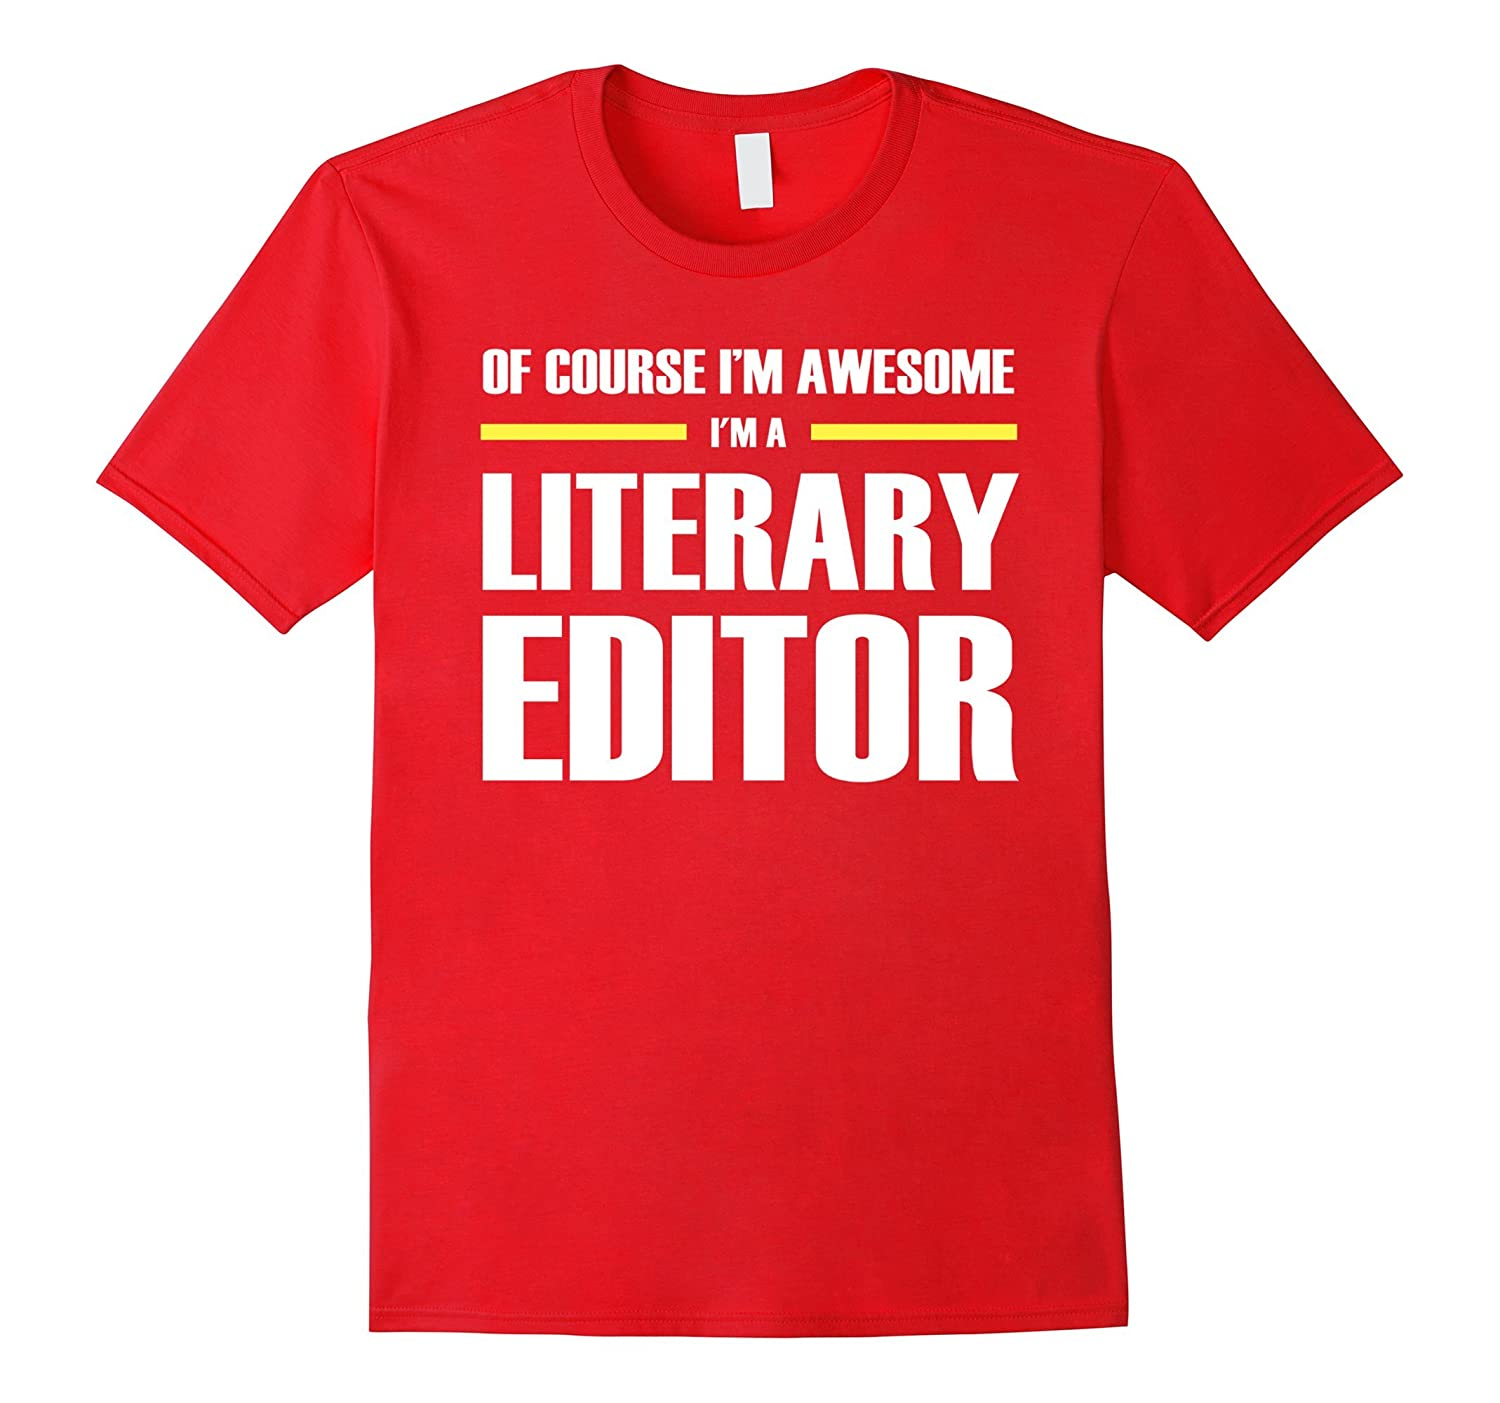 Literary Editor Shirts Im Awesome Relaxed Fit T-Shirt-PL